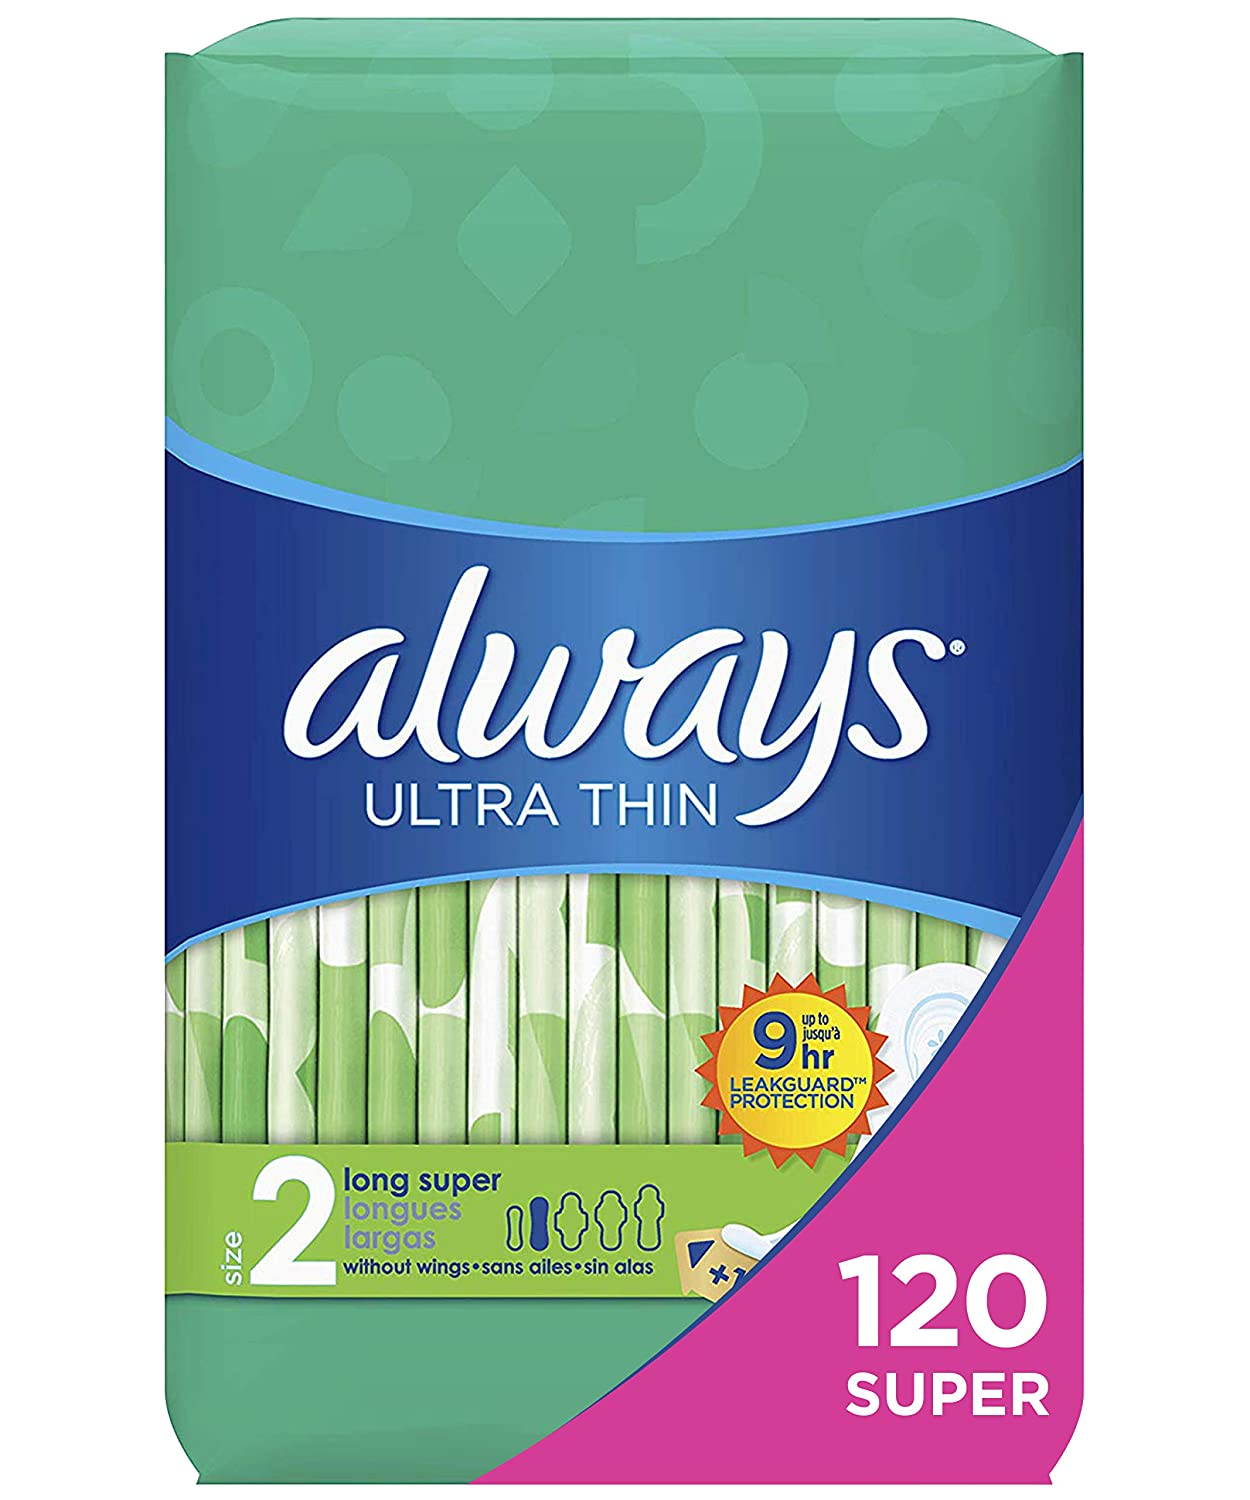 Always Ultra Thin Feminine Pads for Women, Size 2, 120 Count, Super Absorbency, Unscented (40 Count, Pack of 3 - 120 Count Total)